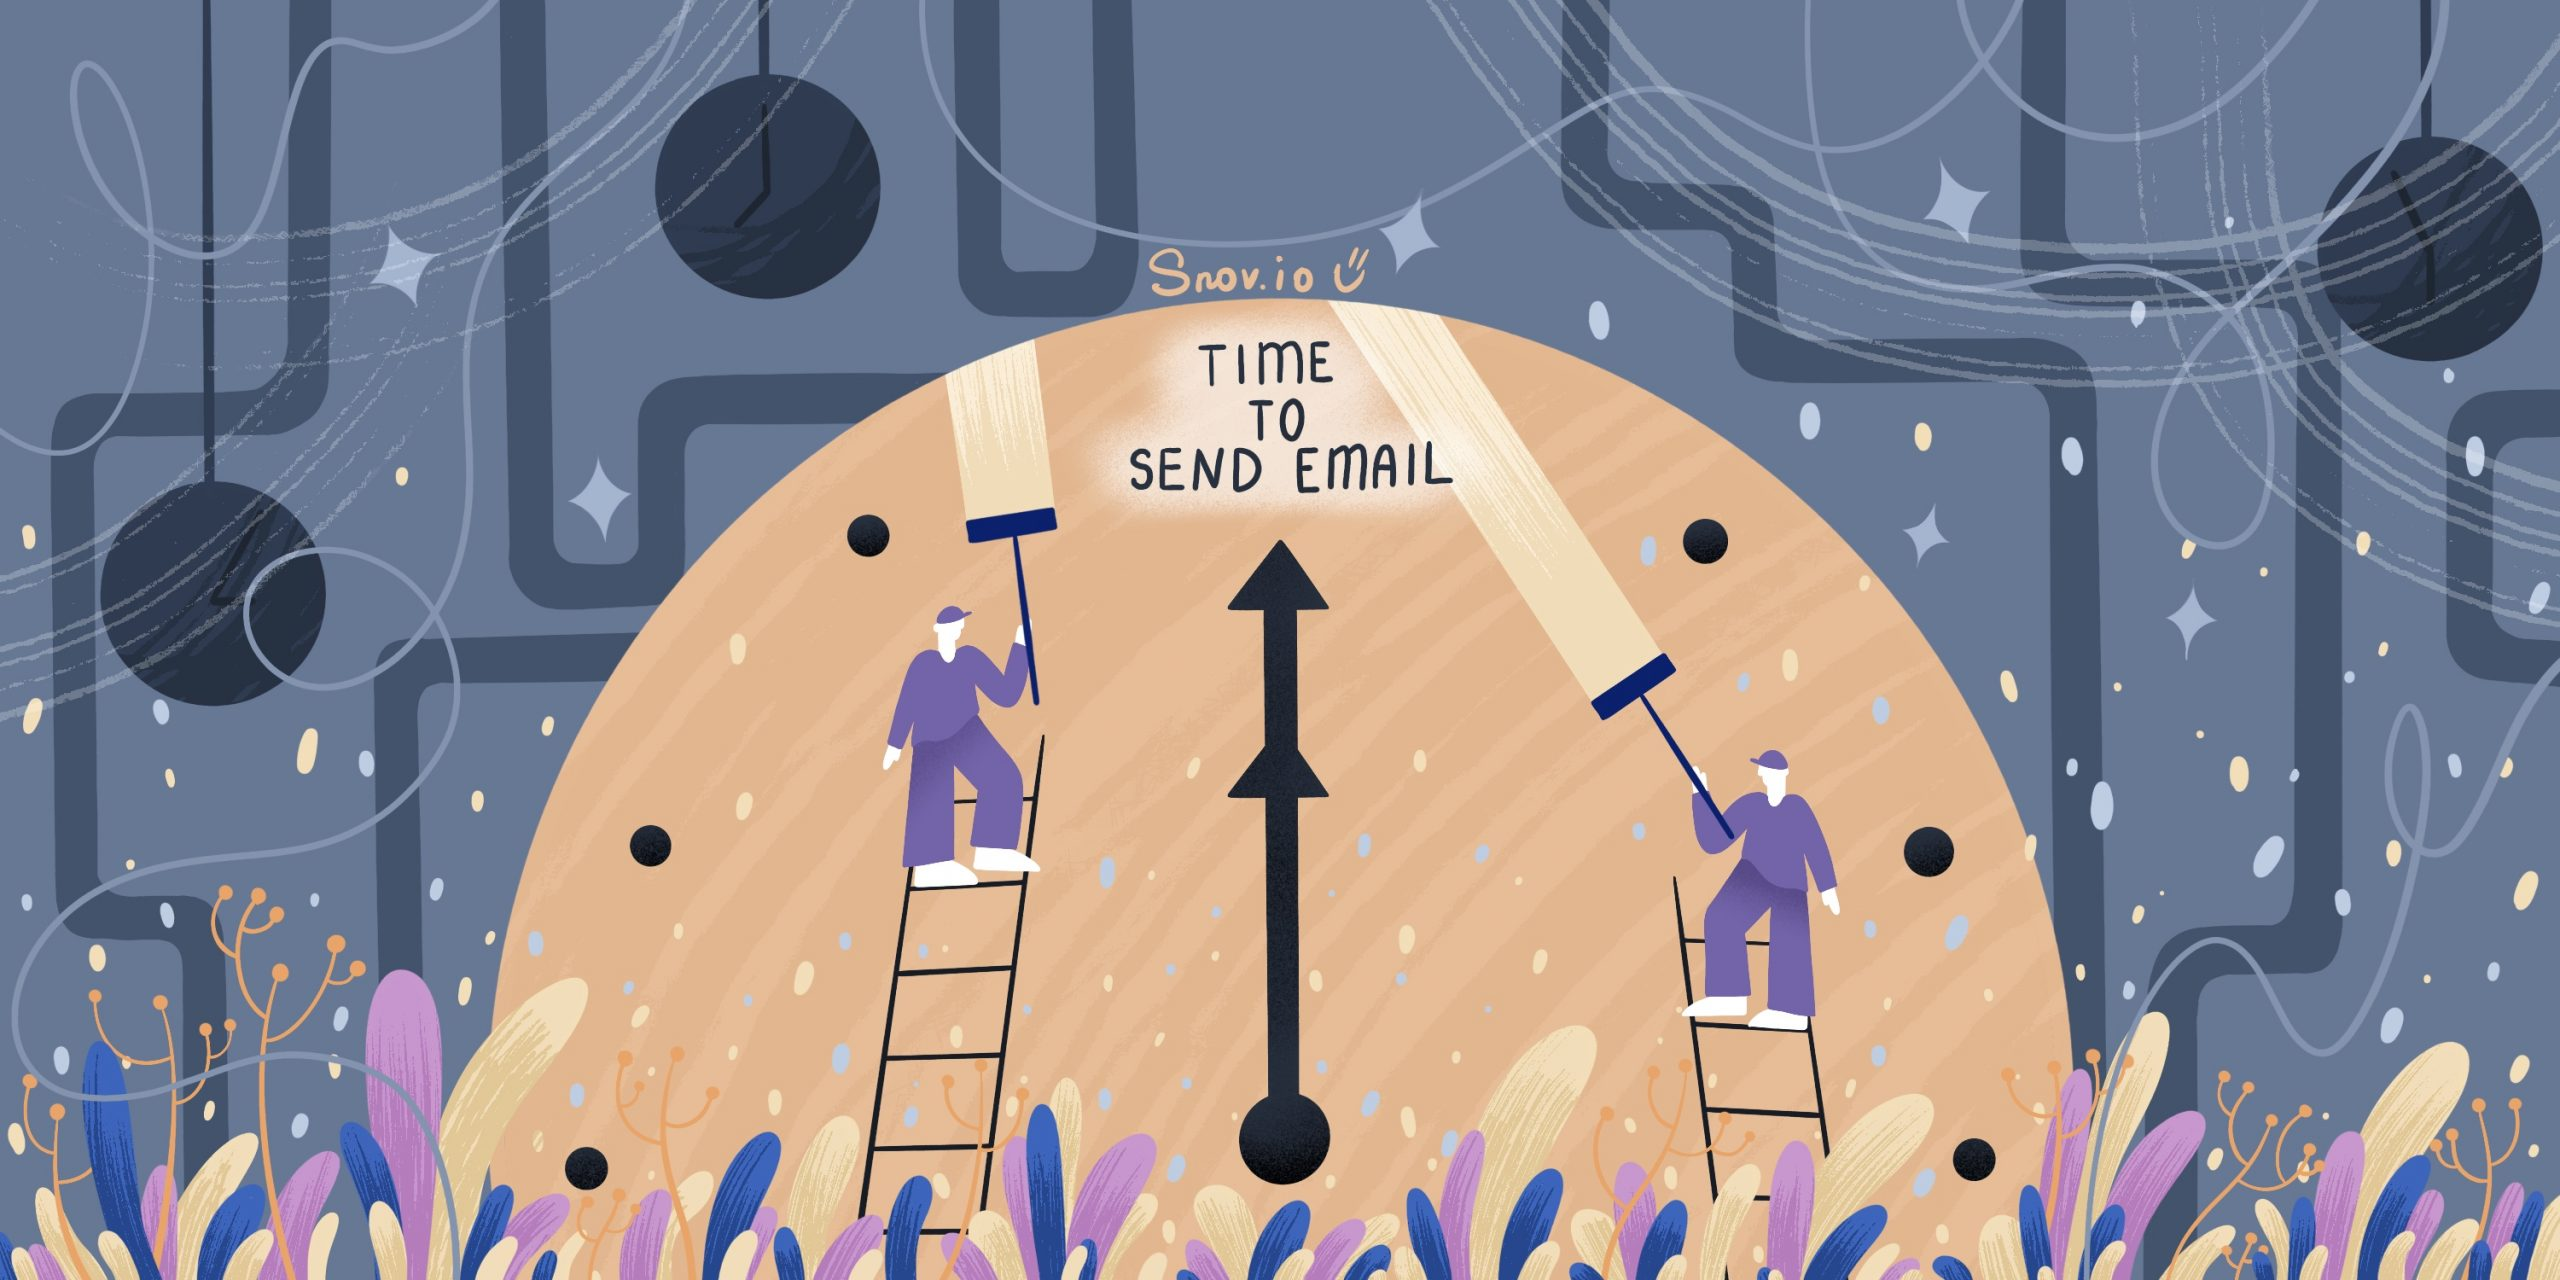 Best Time To Send Email (According To Science)